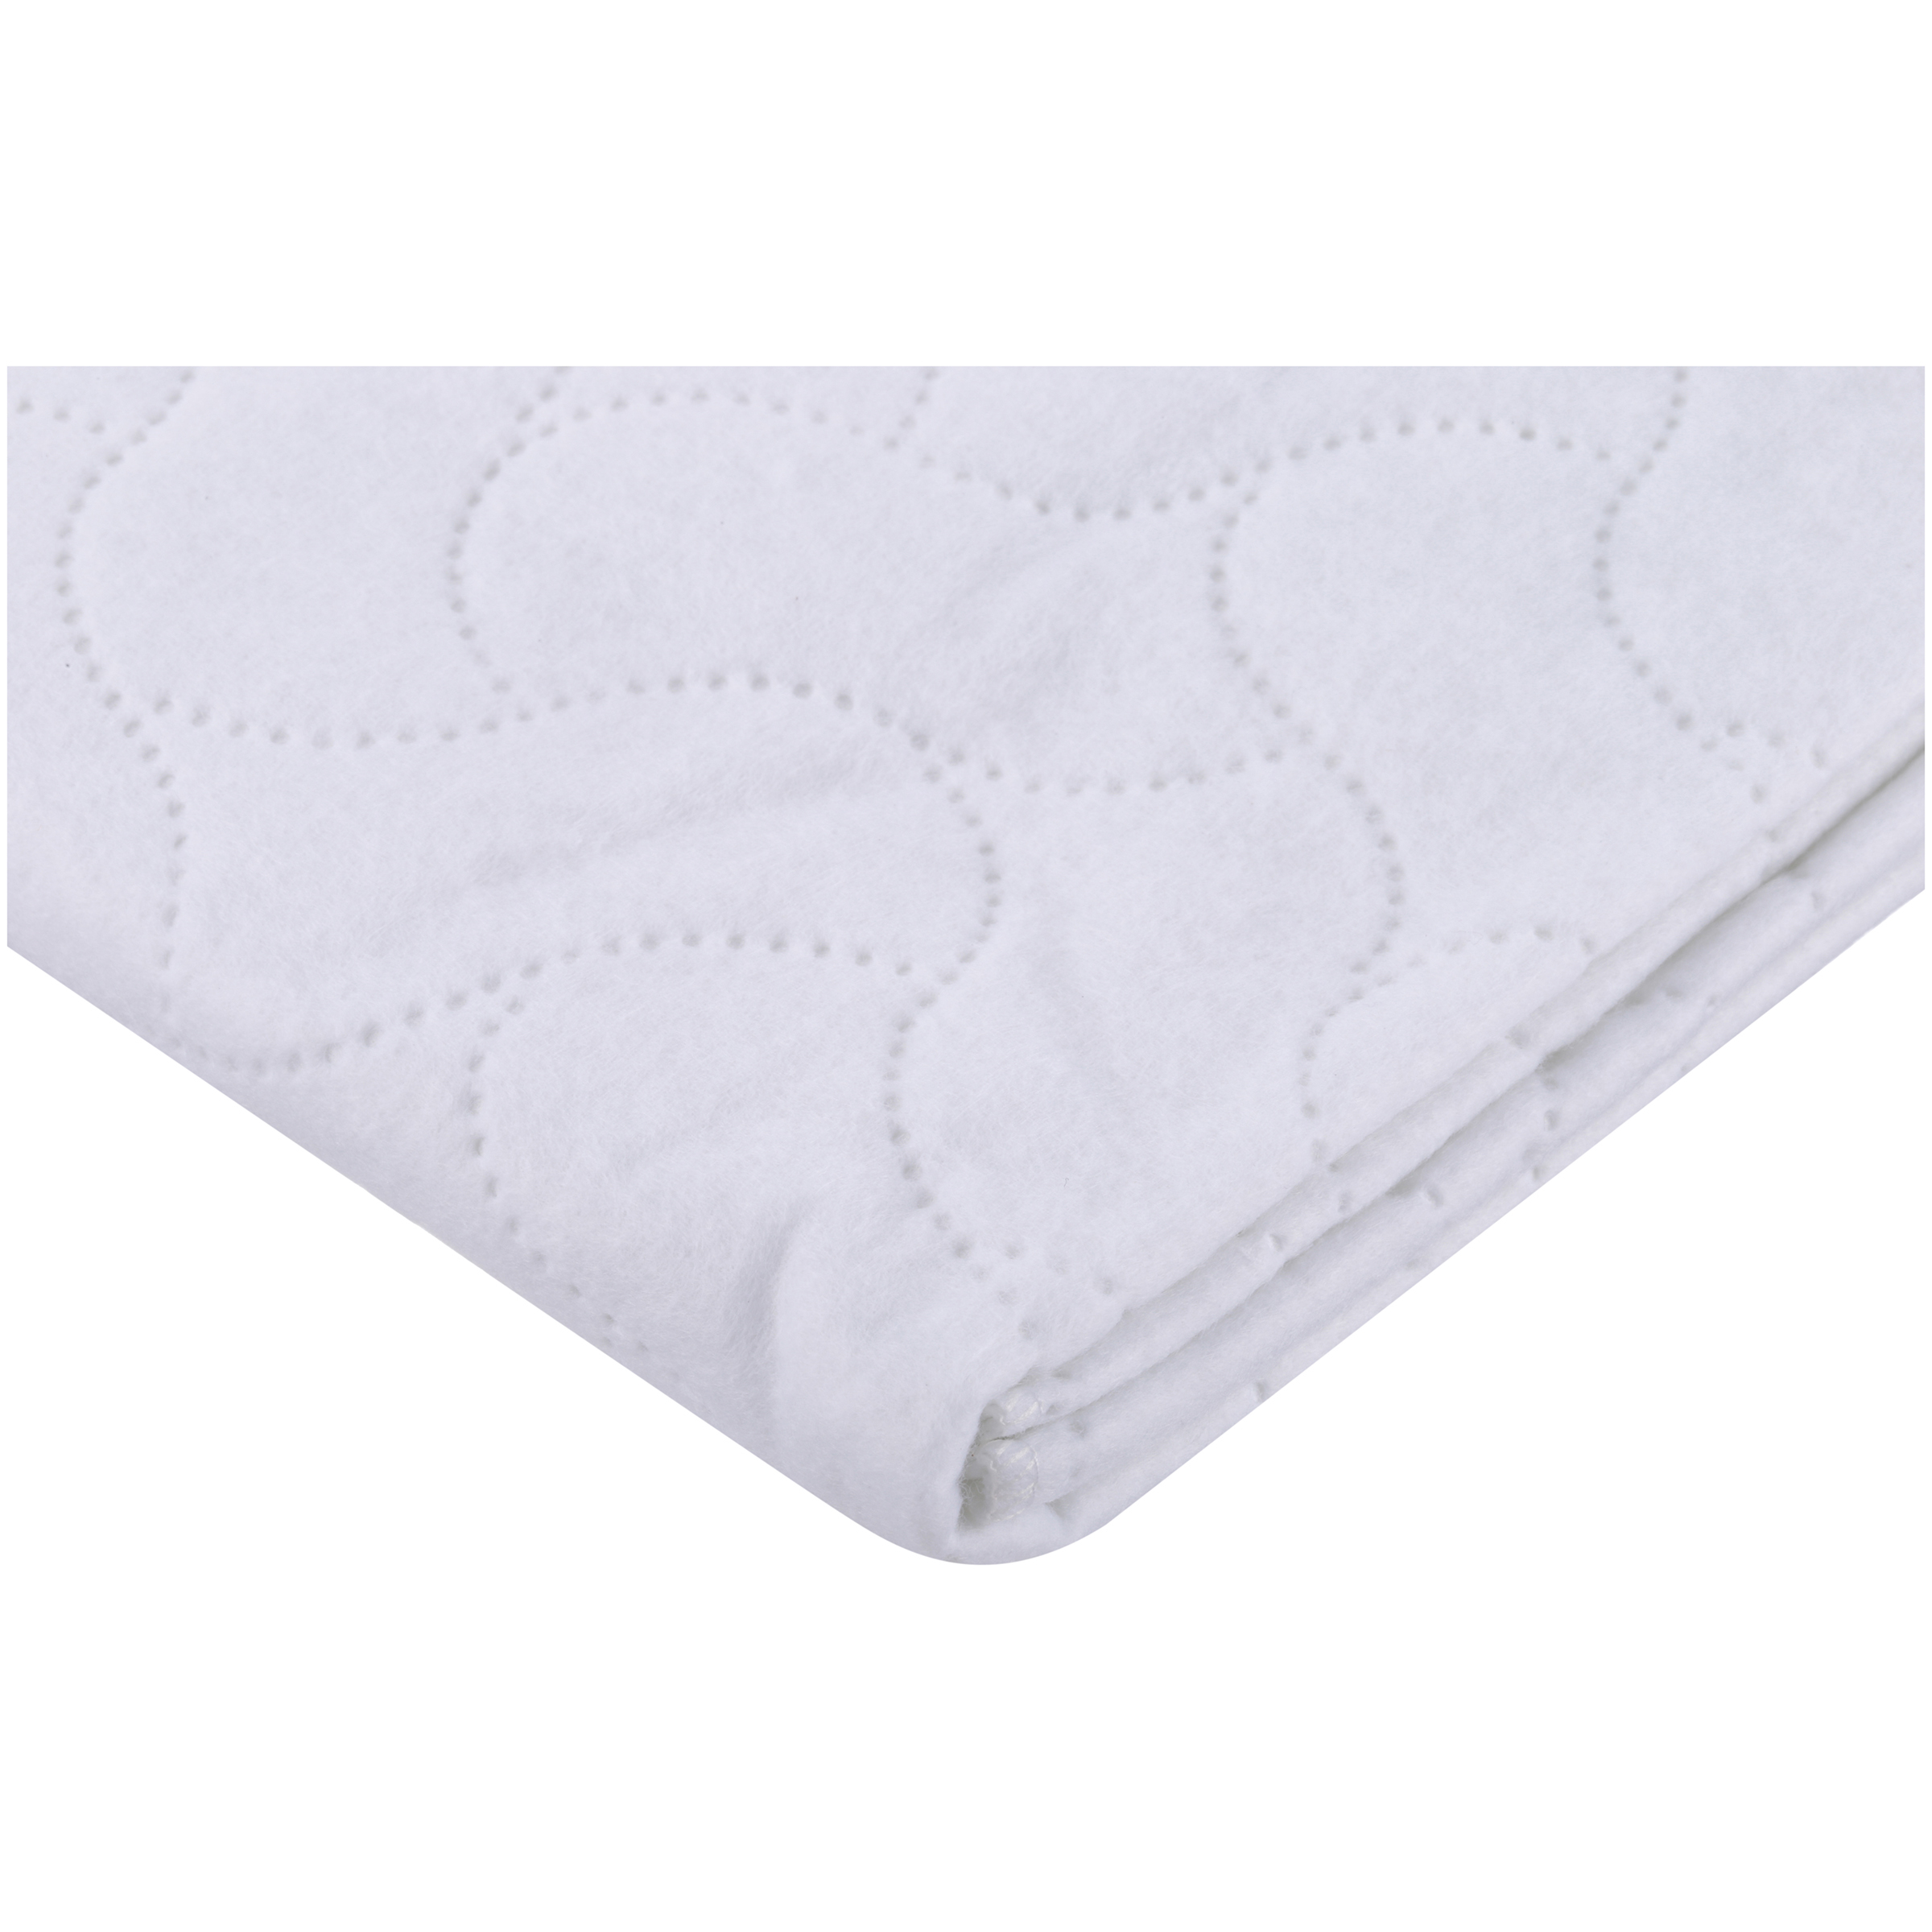 TL Care Waterproof Quilted Crib Pad